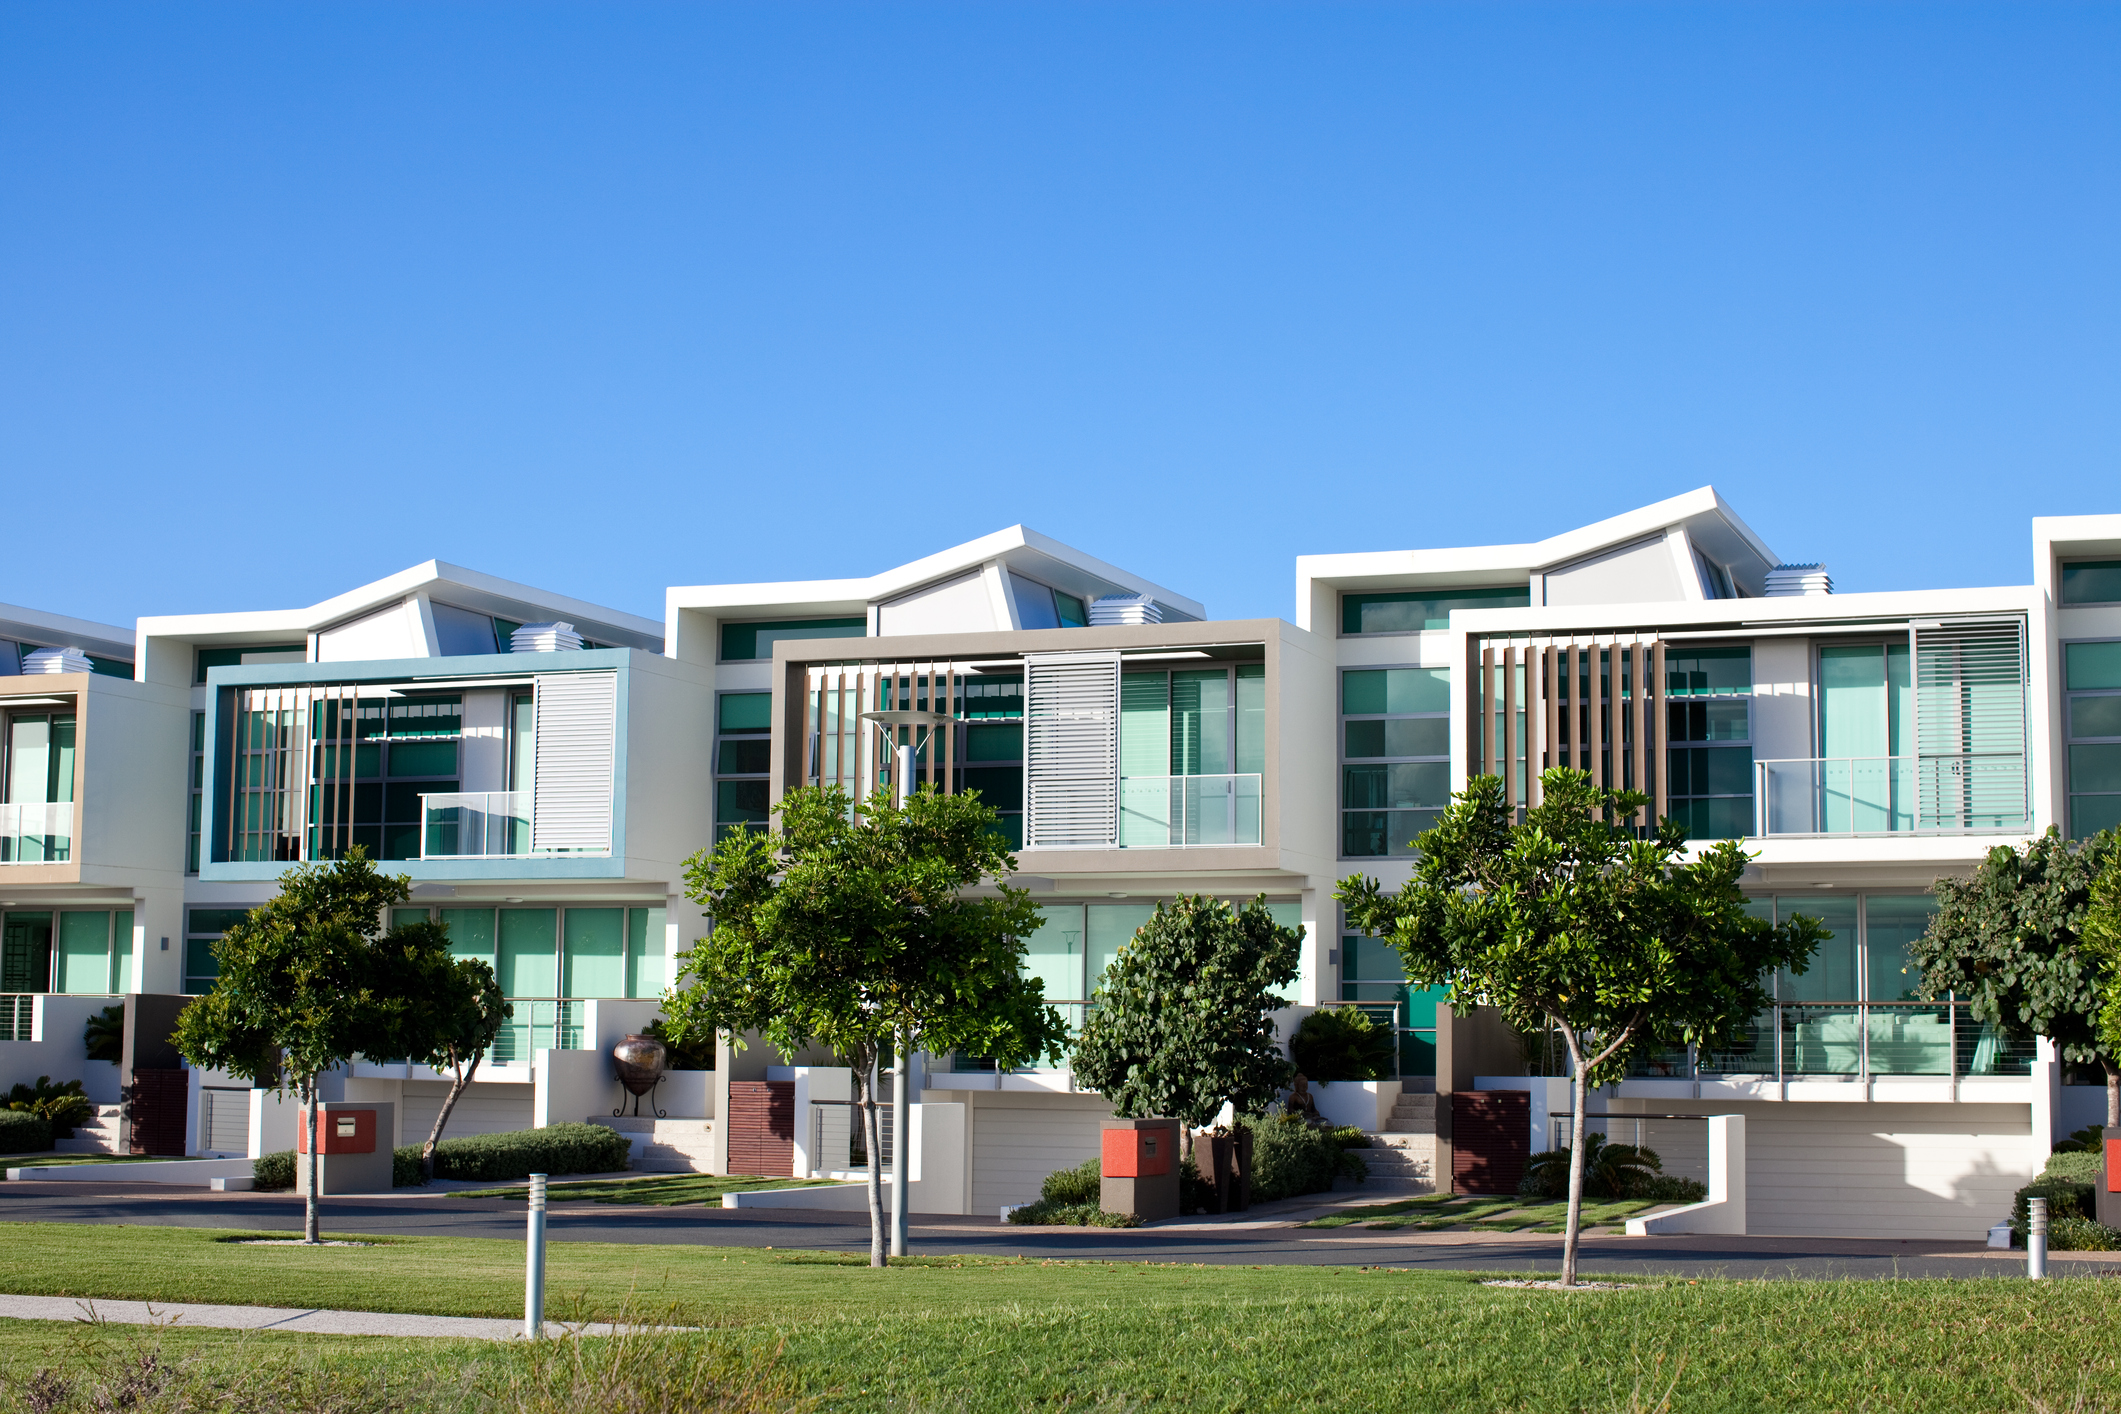 Brisbane, Sydney and Melbourne Housing Prices are forecast to fall says HSBC.